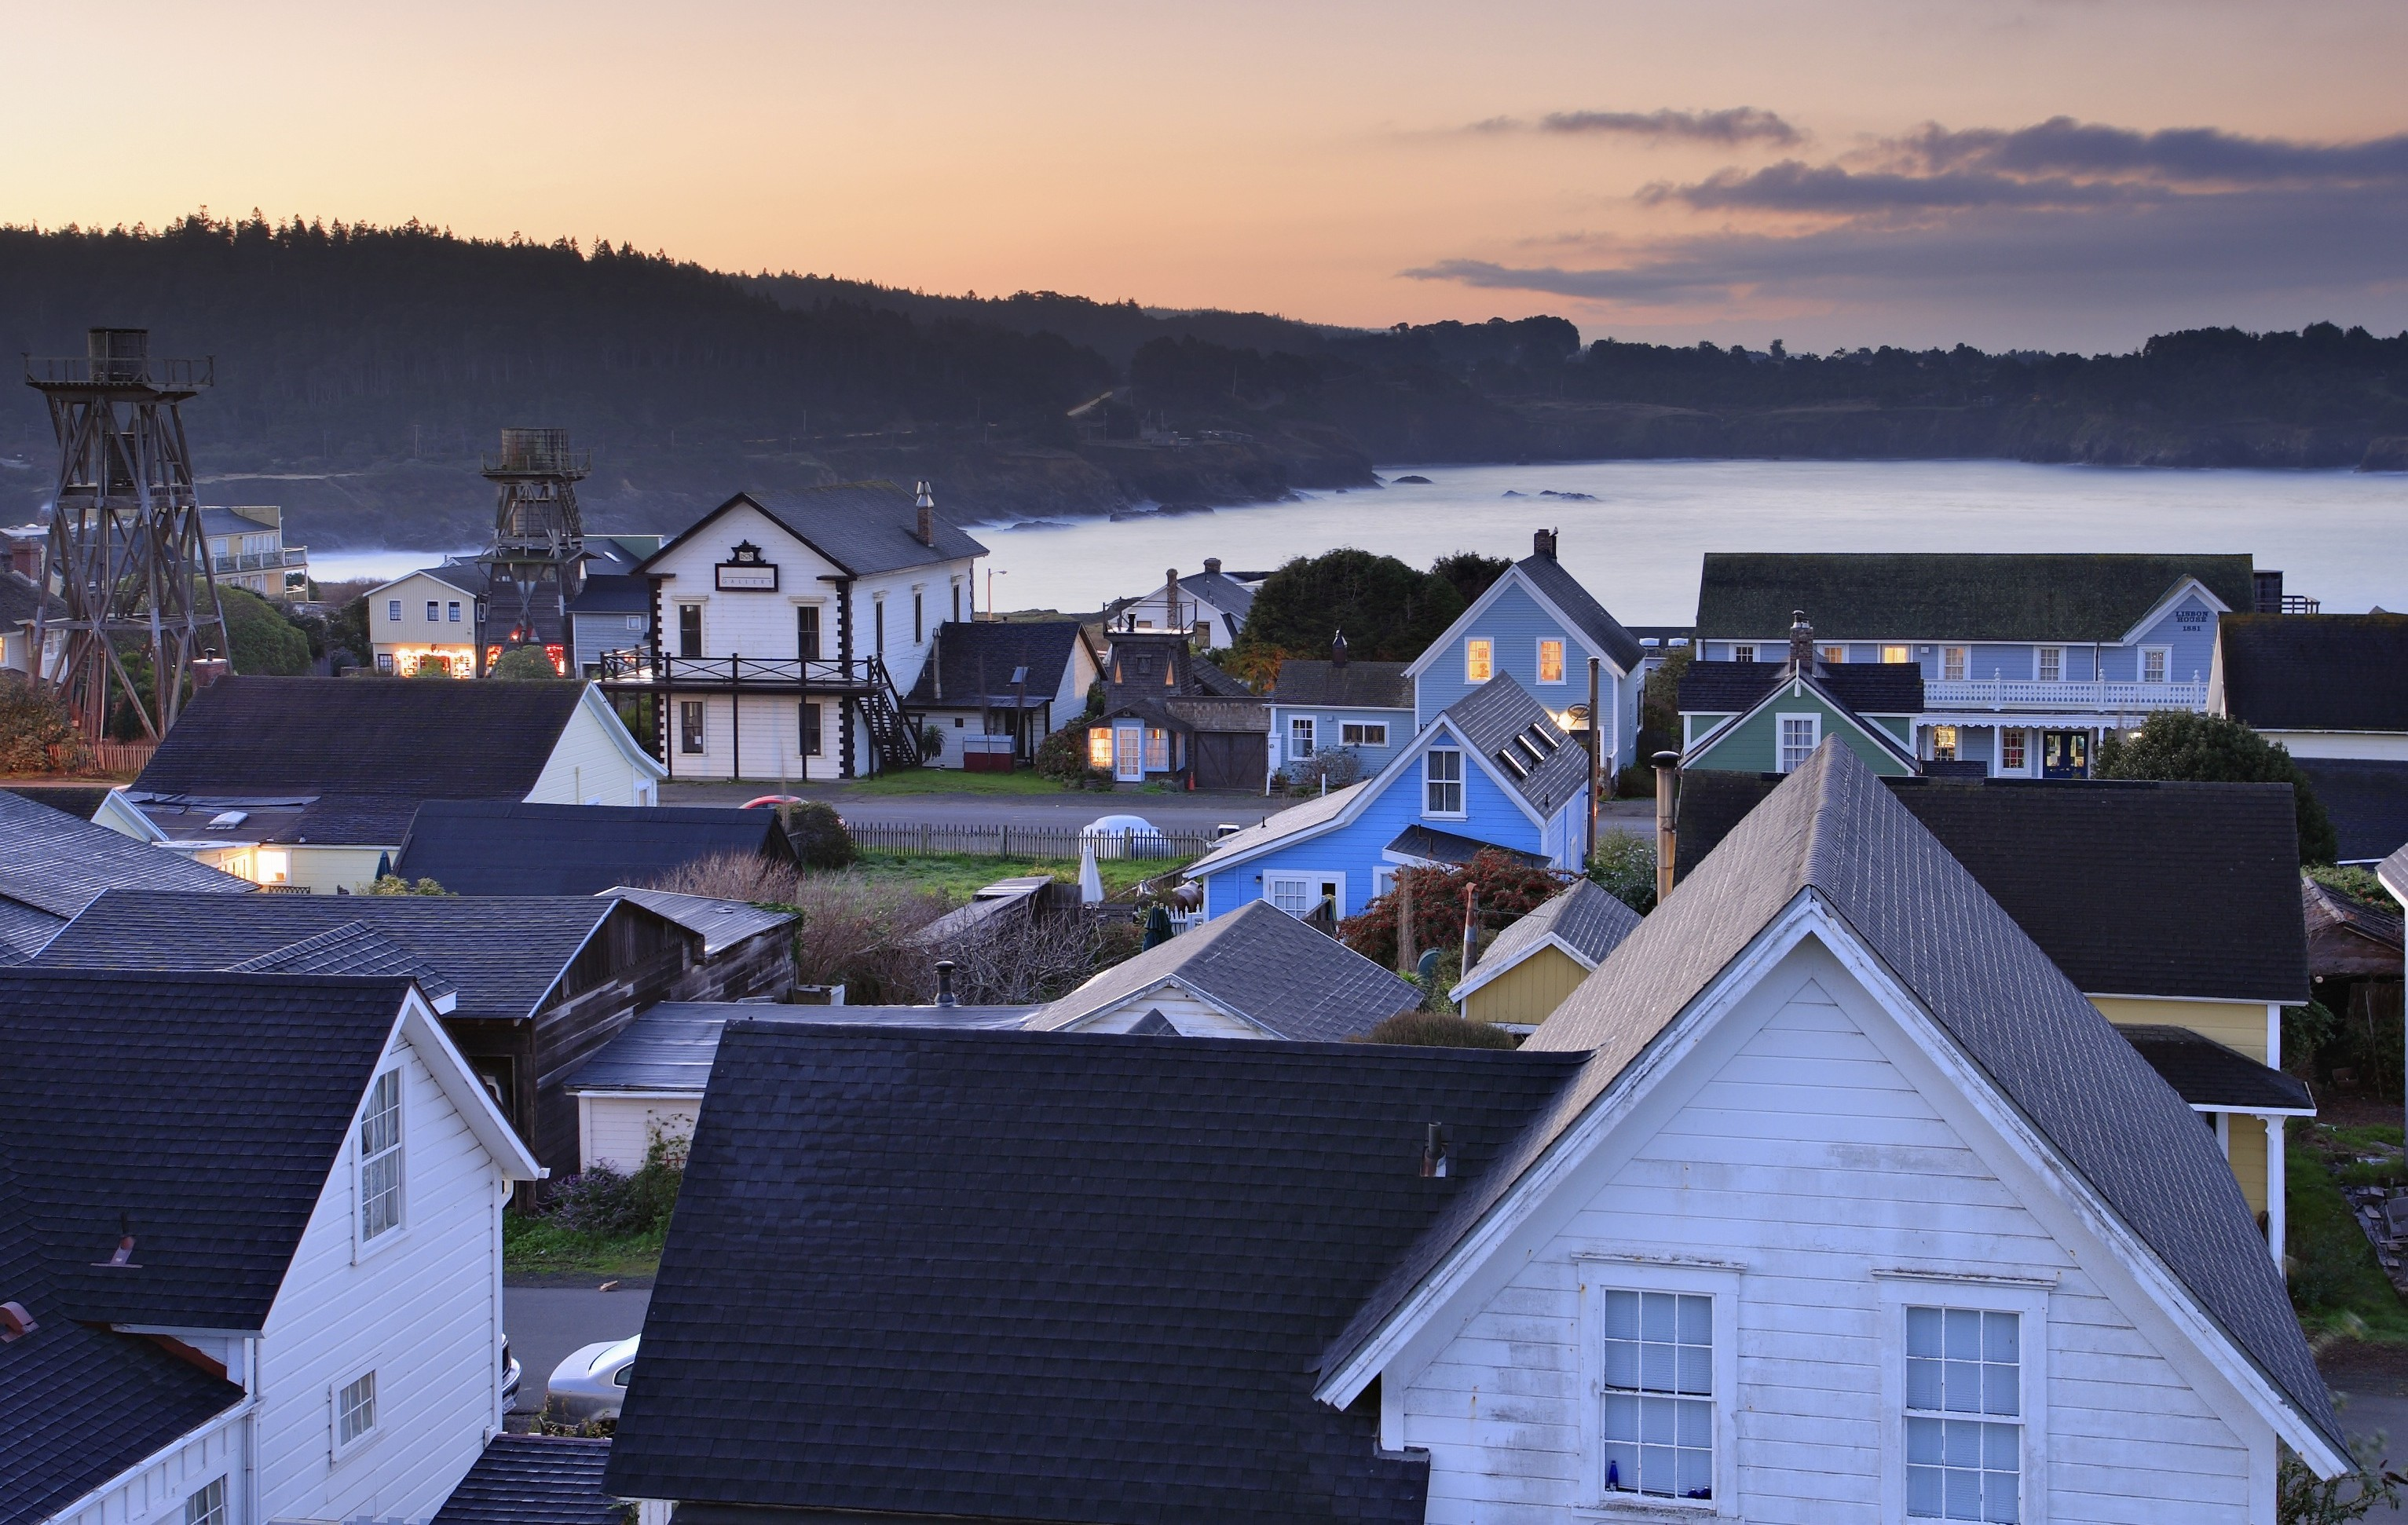 10 Fun Facts About Mendocino You Probably Didn't Know, Albion River Inn